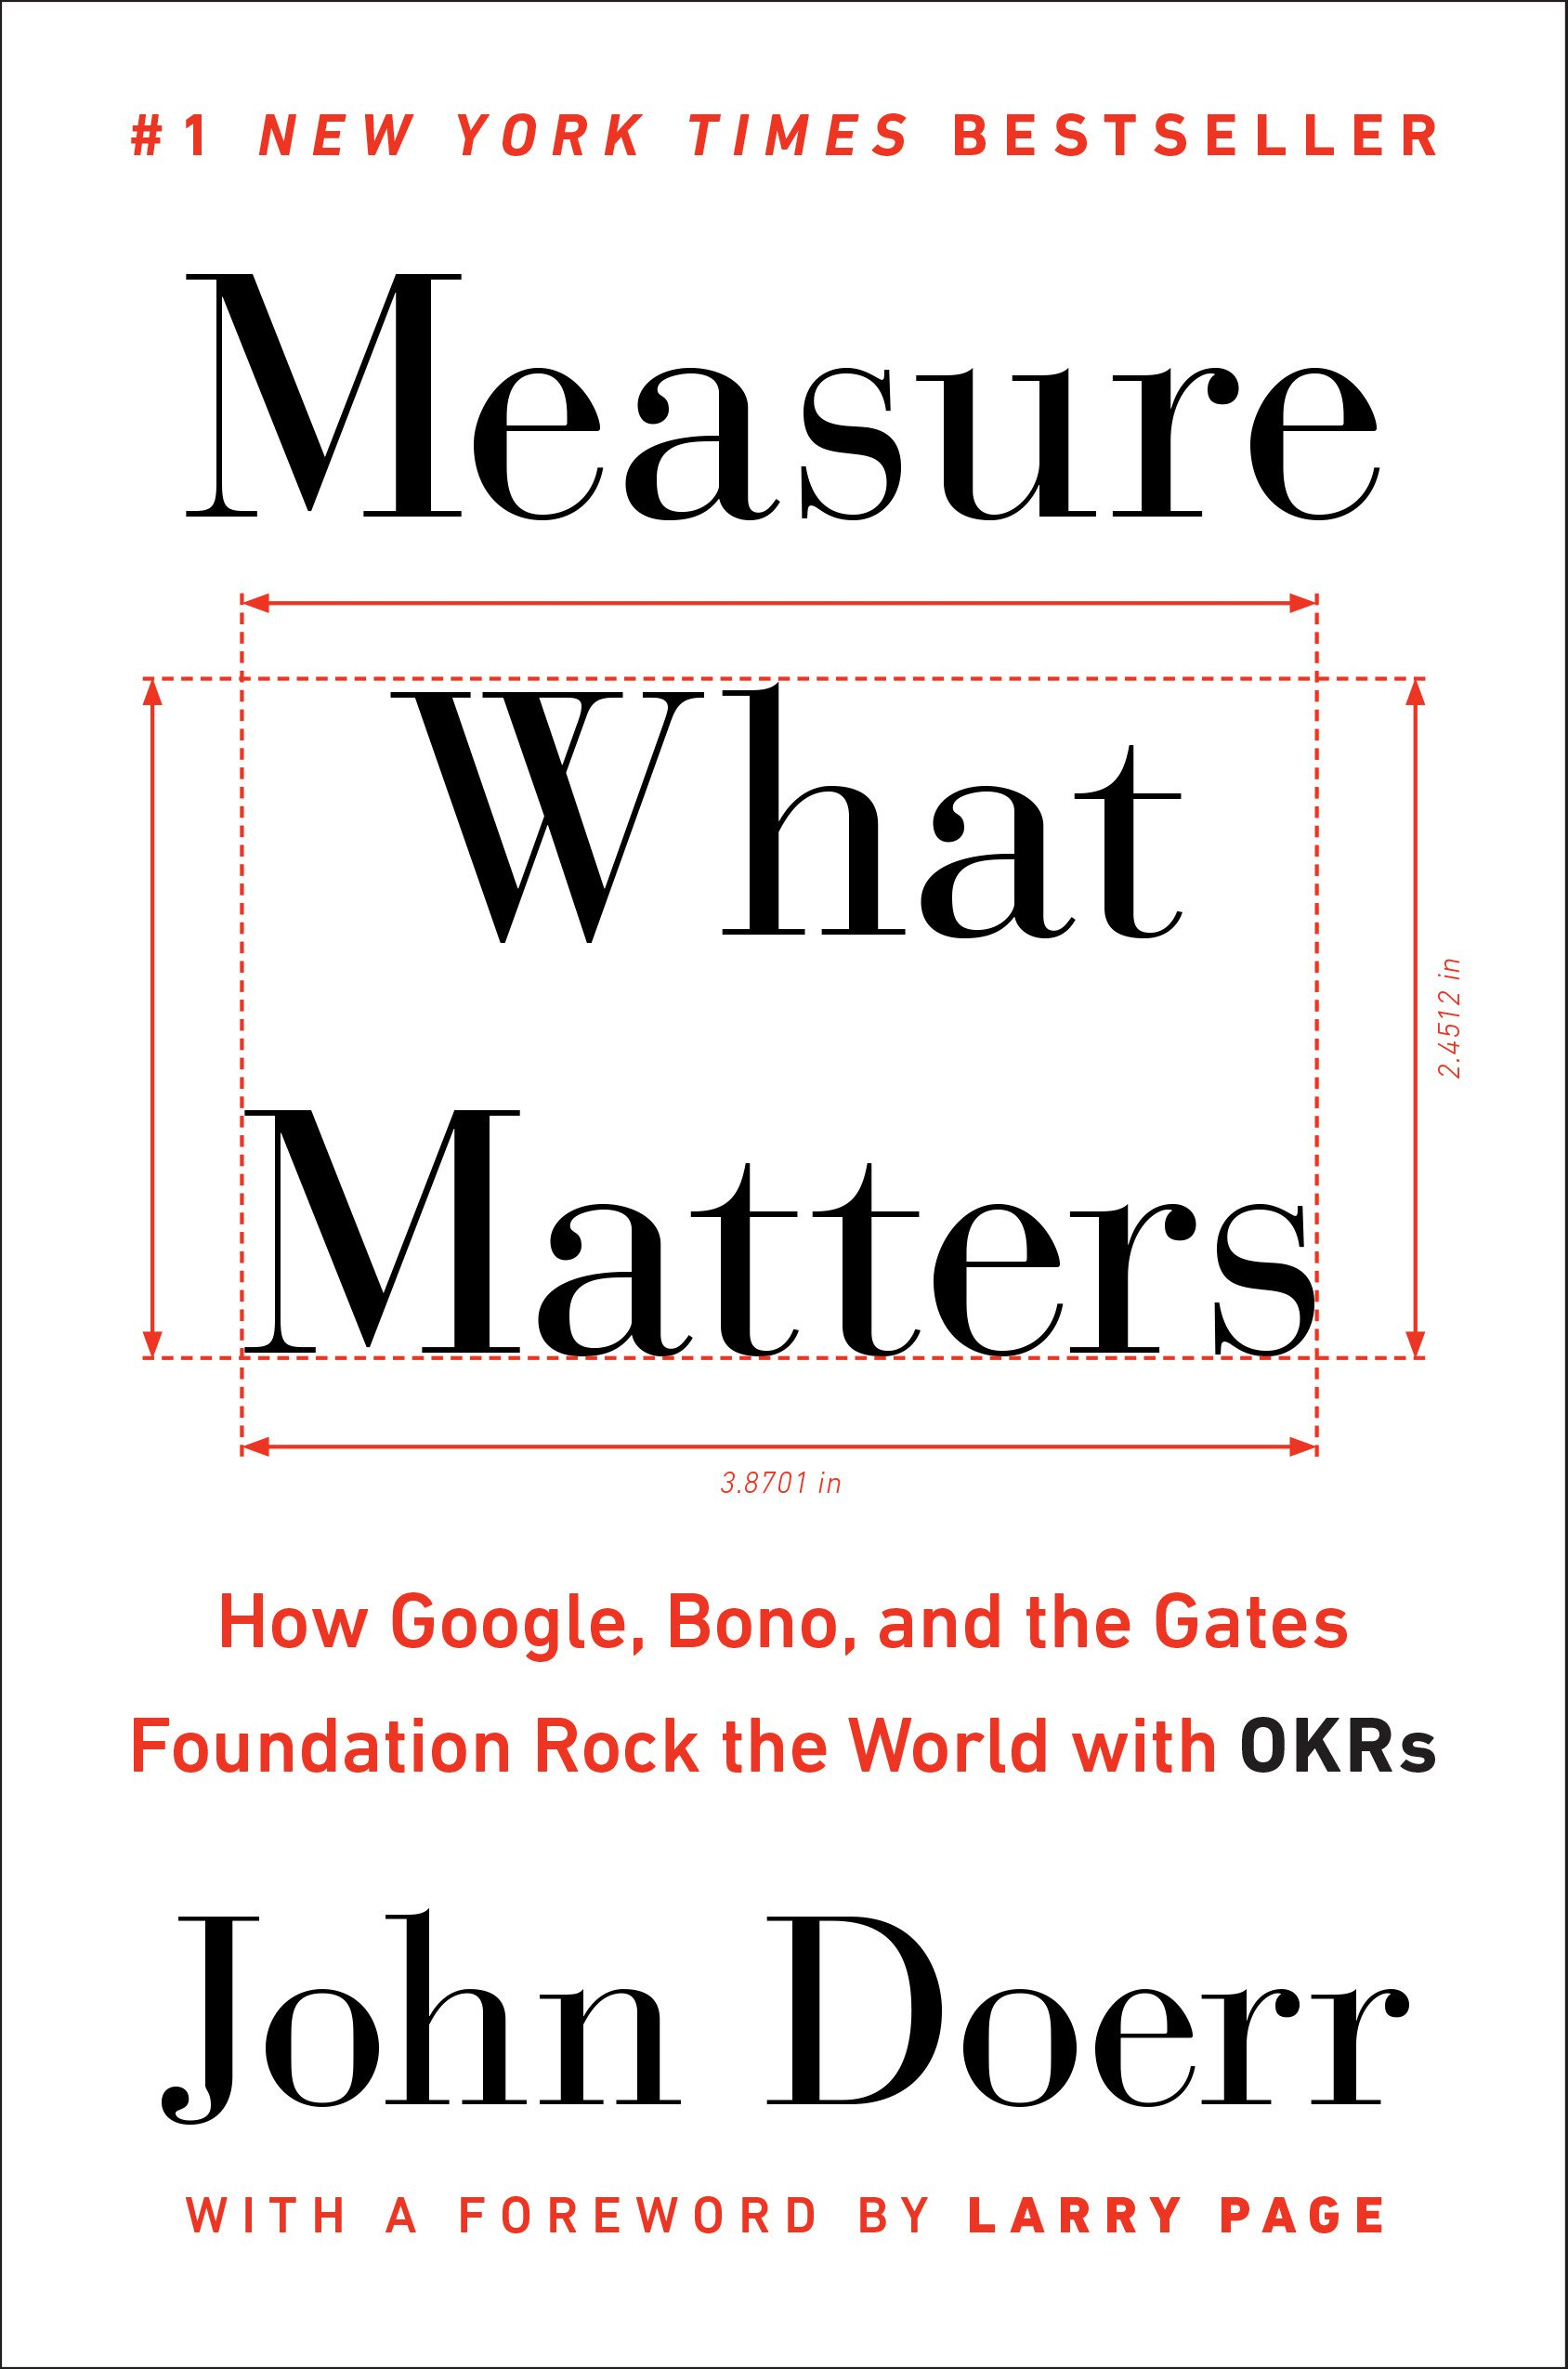 amazoncom measure what matters how google bono and the gates foundation rock the world with okrs 9780525536222 john doerr larry page books